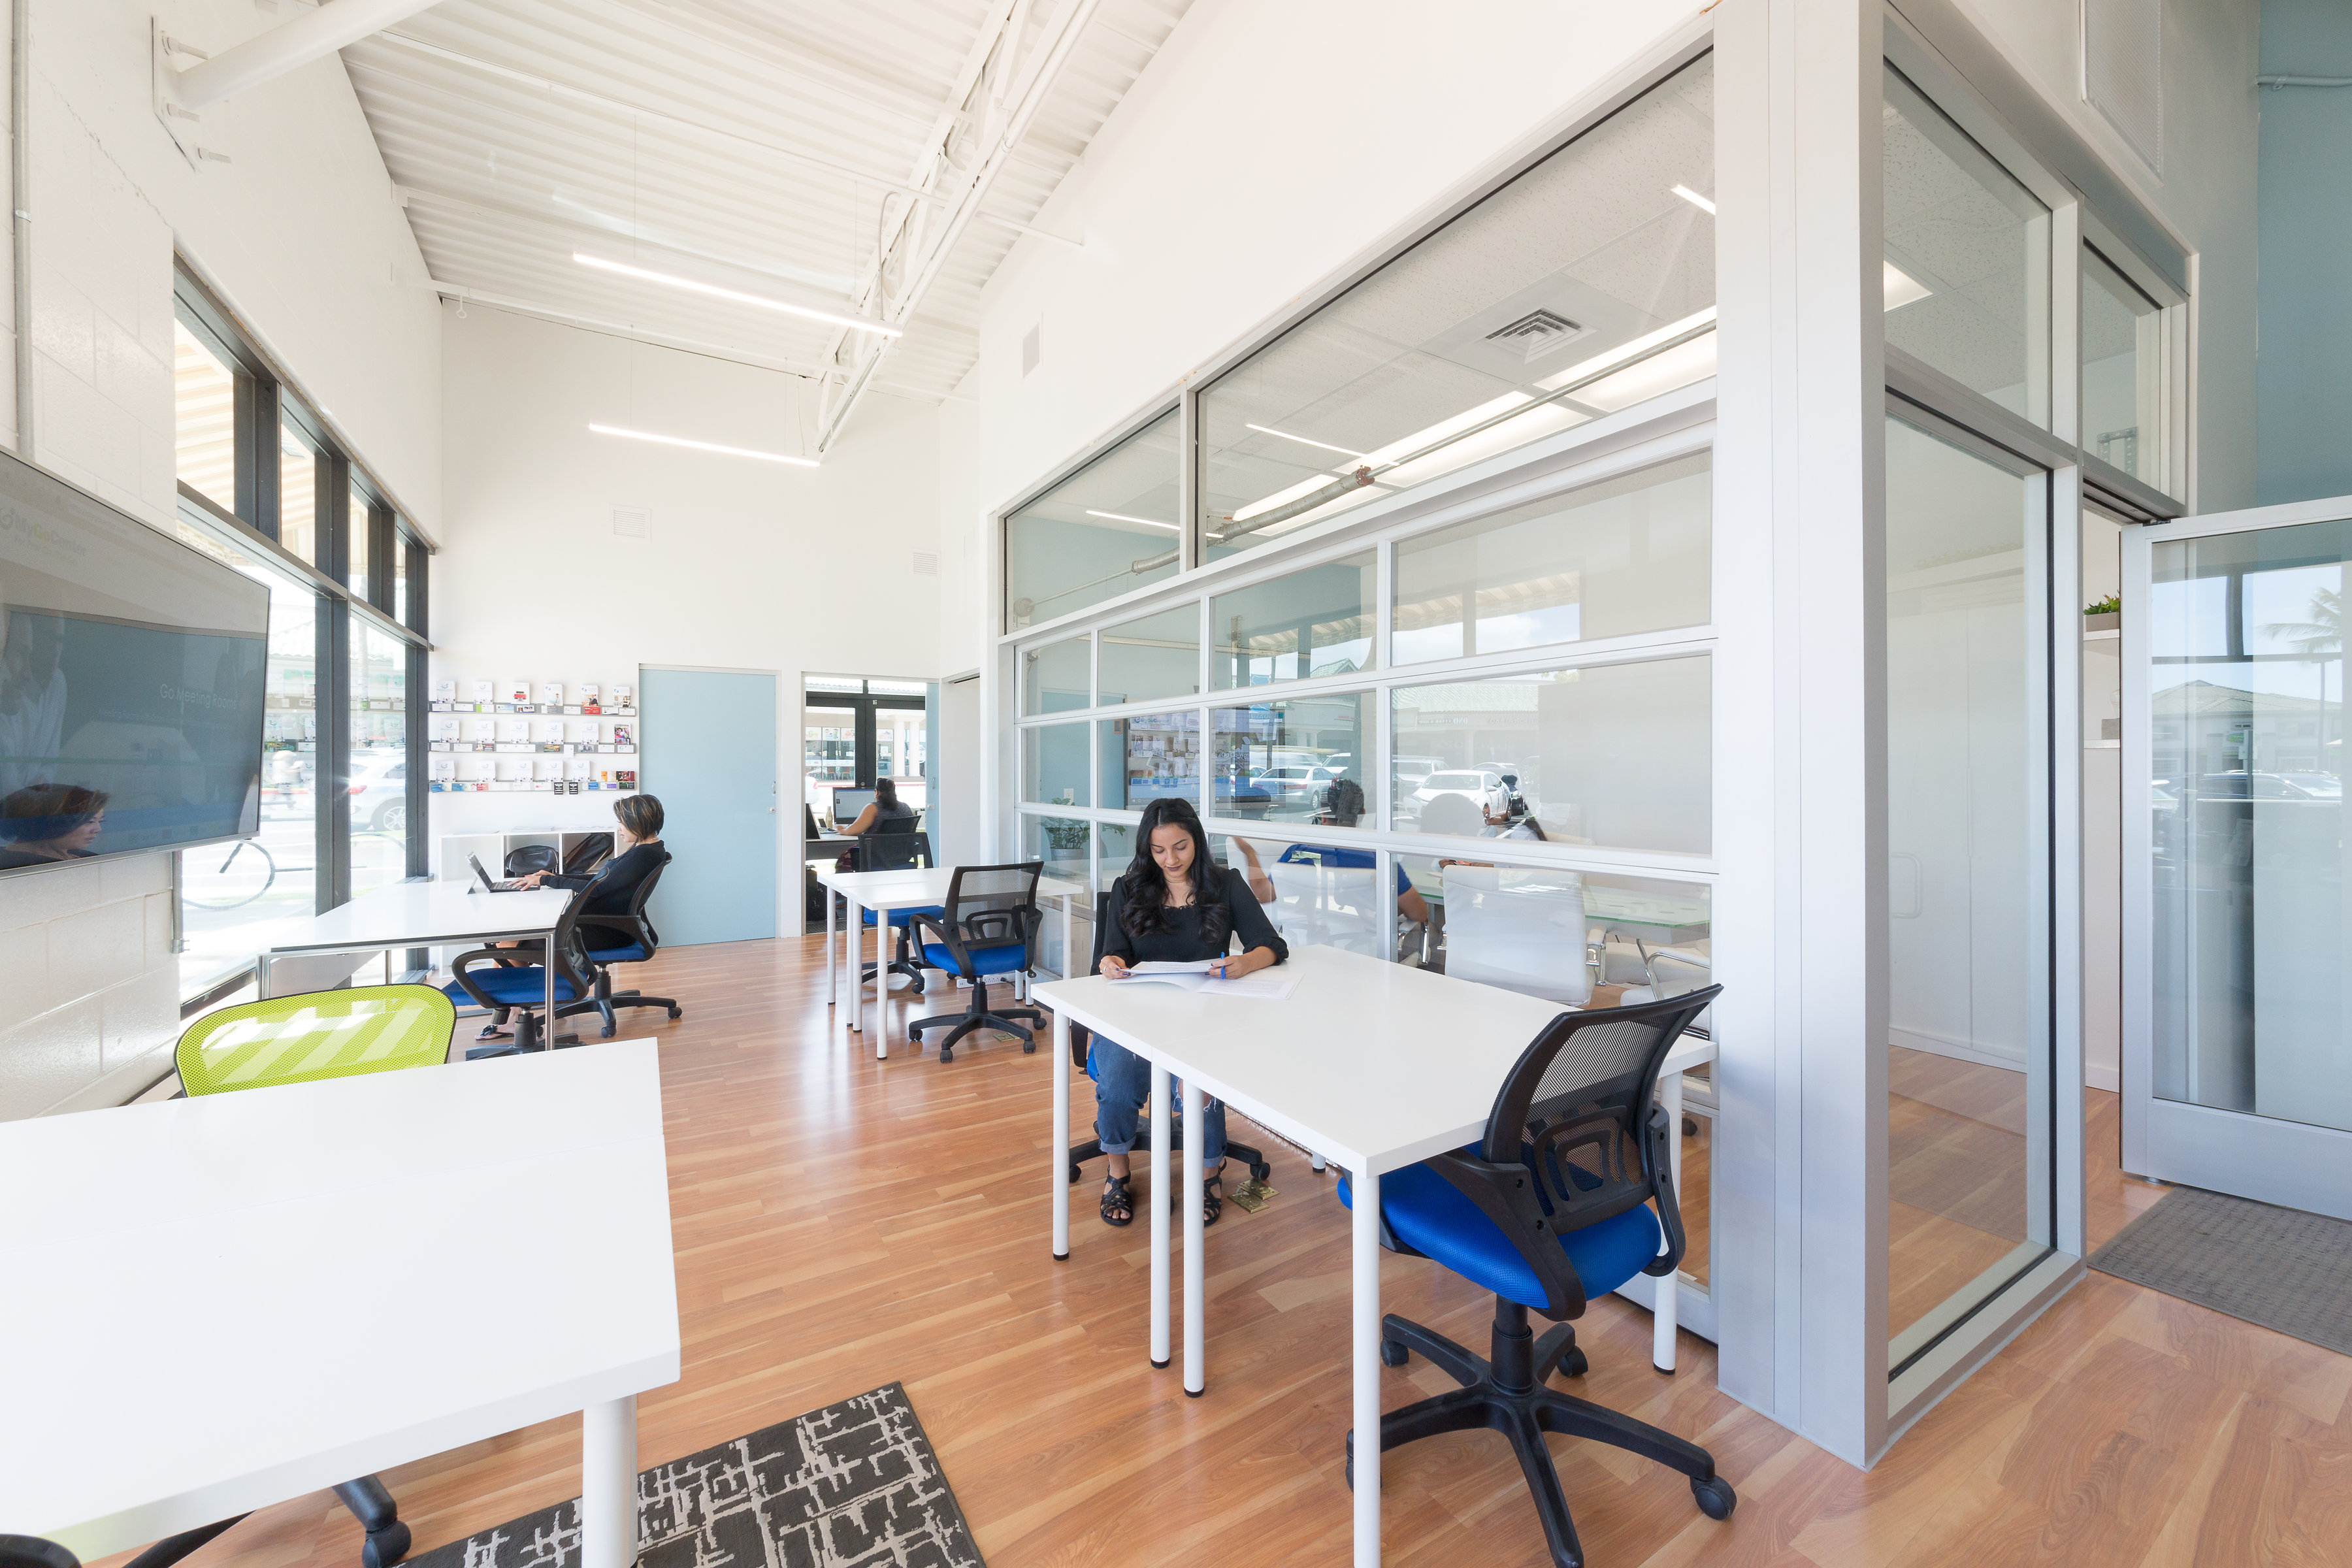 MyGoCenter shared workspace community area in Hawaii